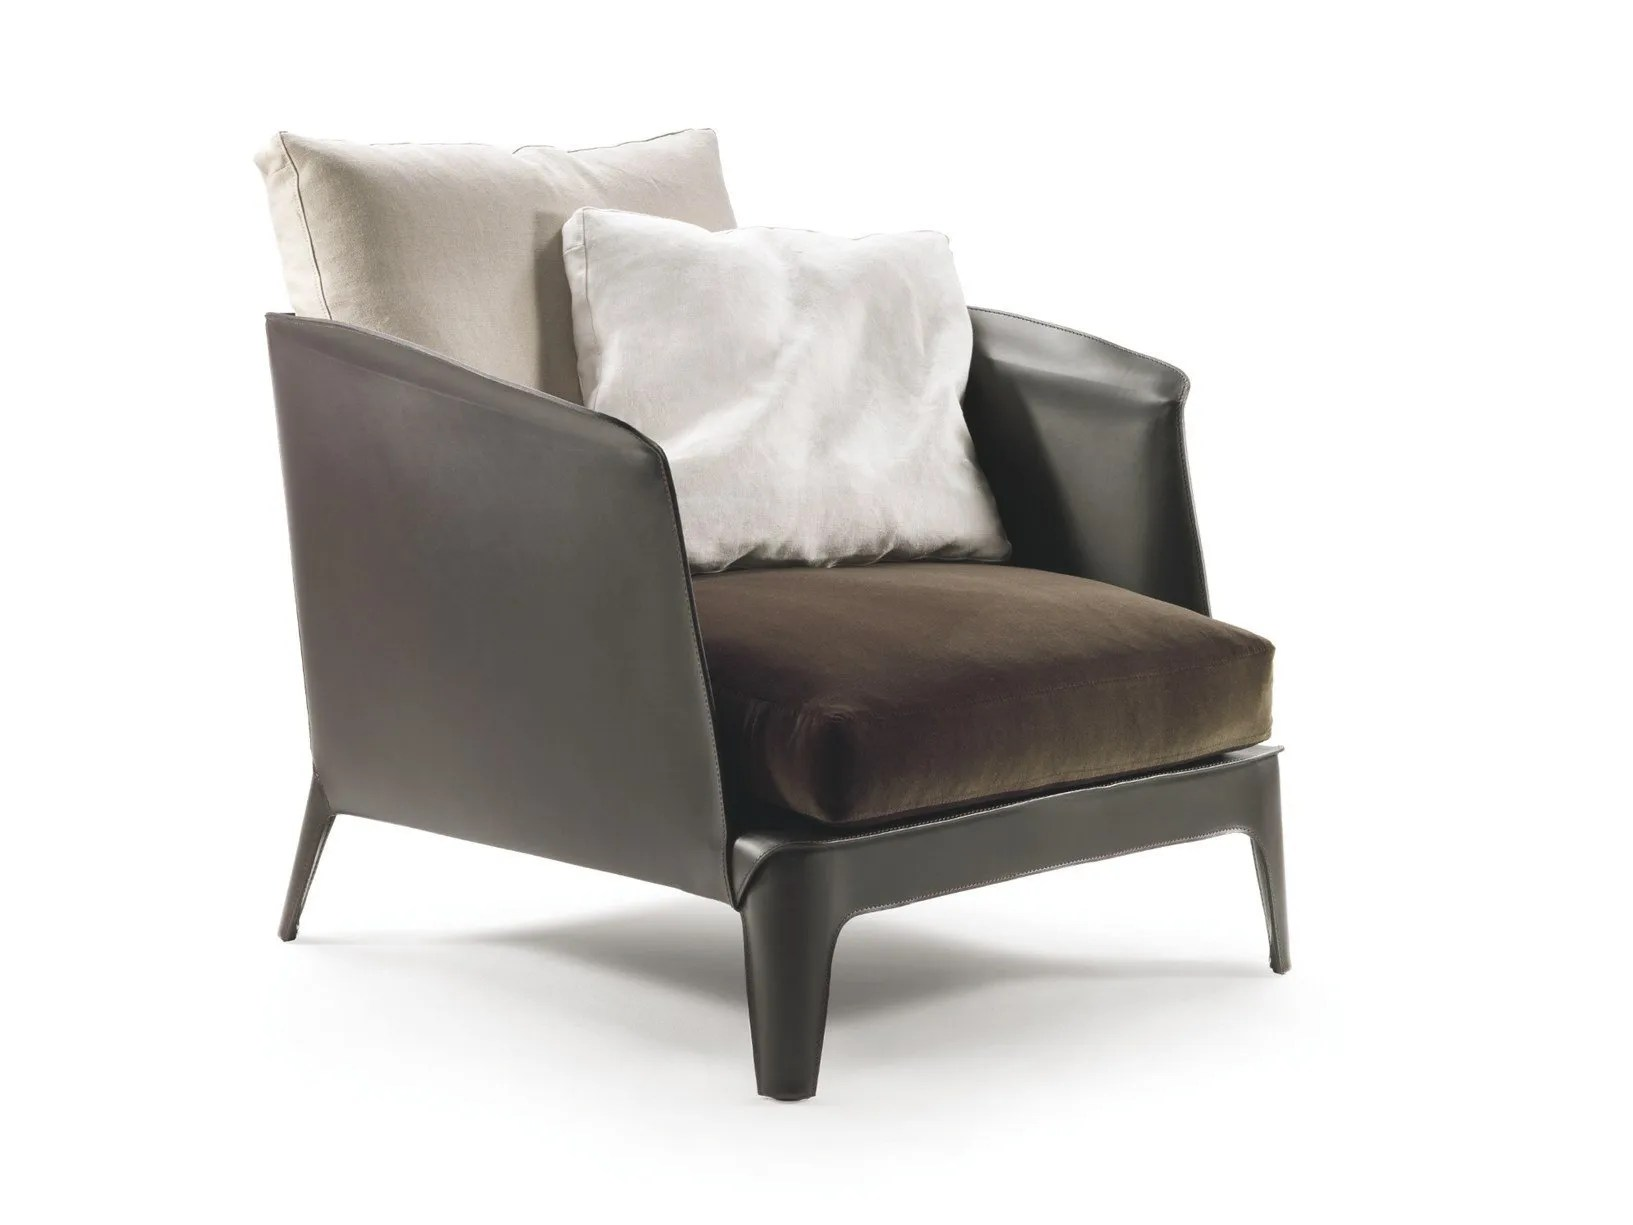 Cowhide Leather Soft Cushions